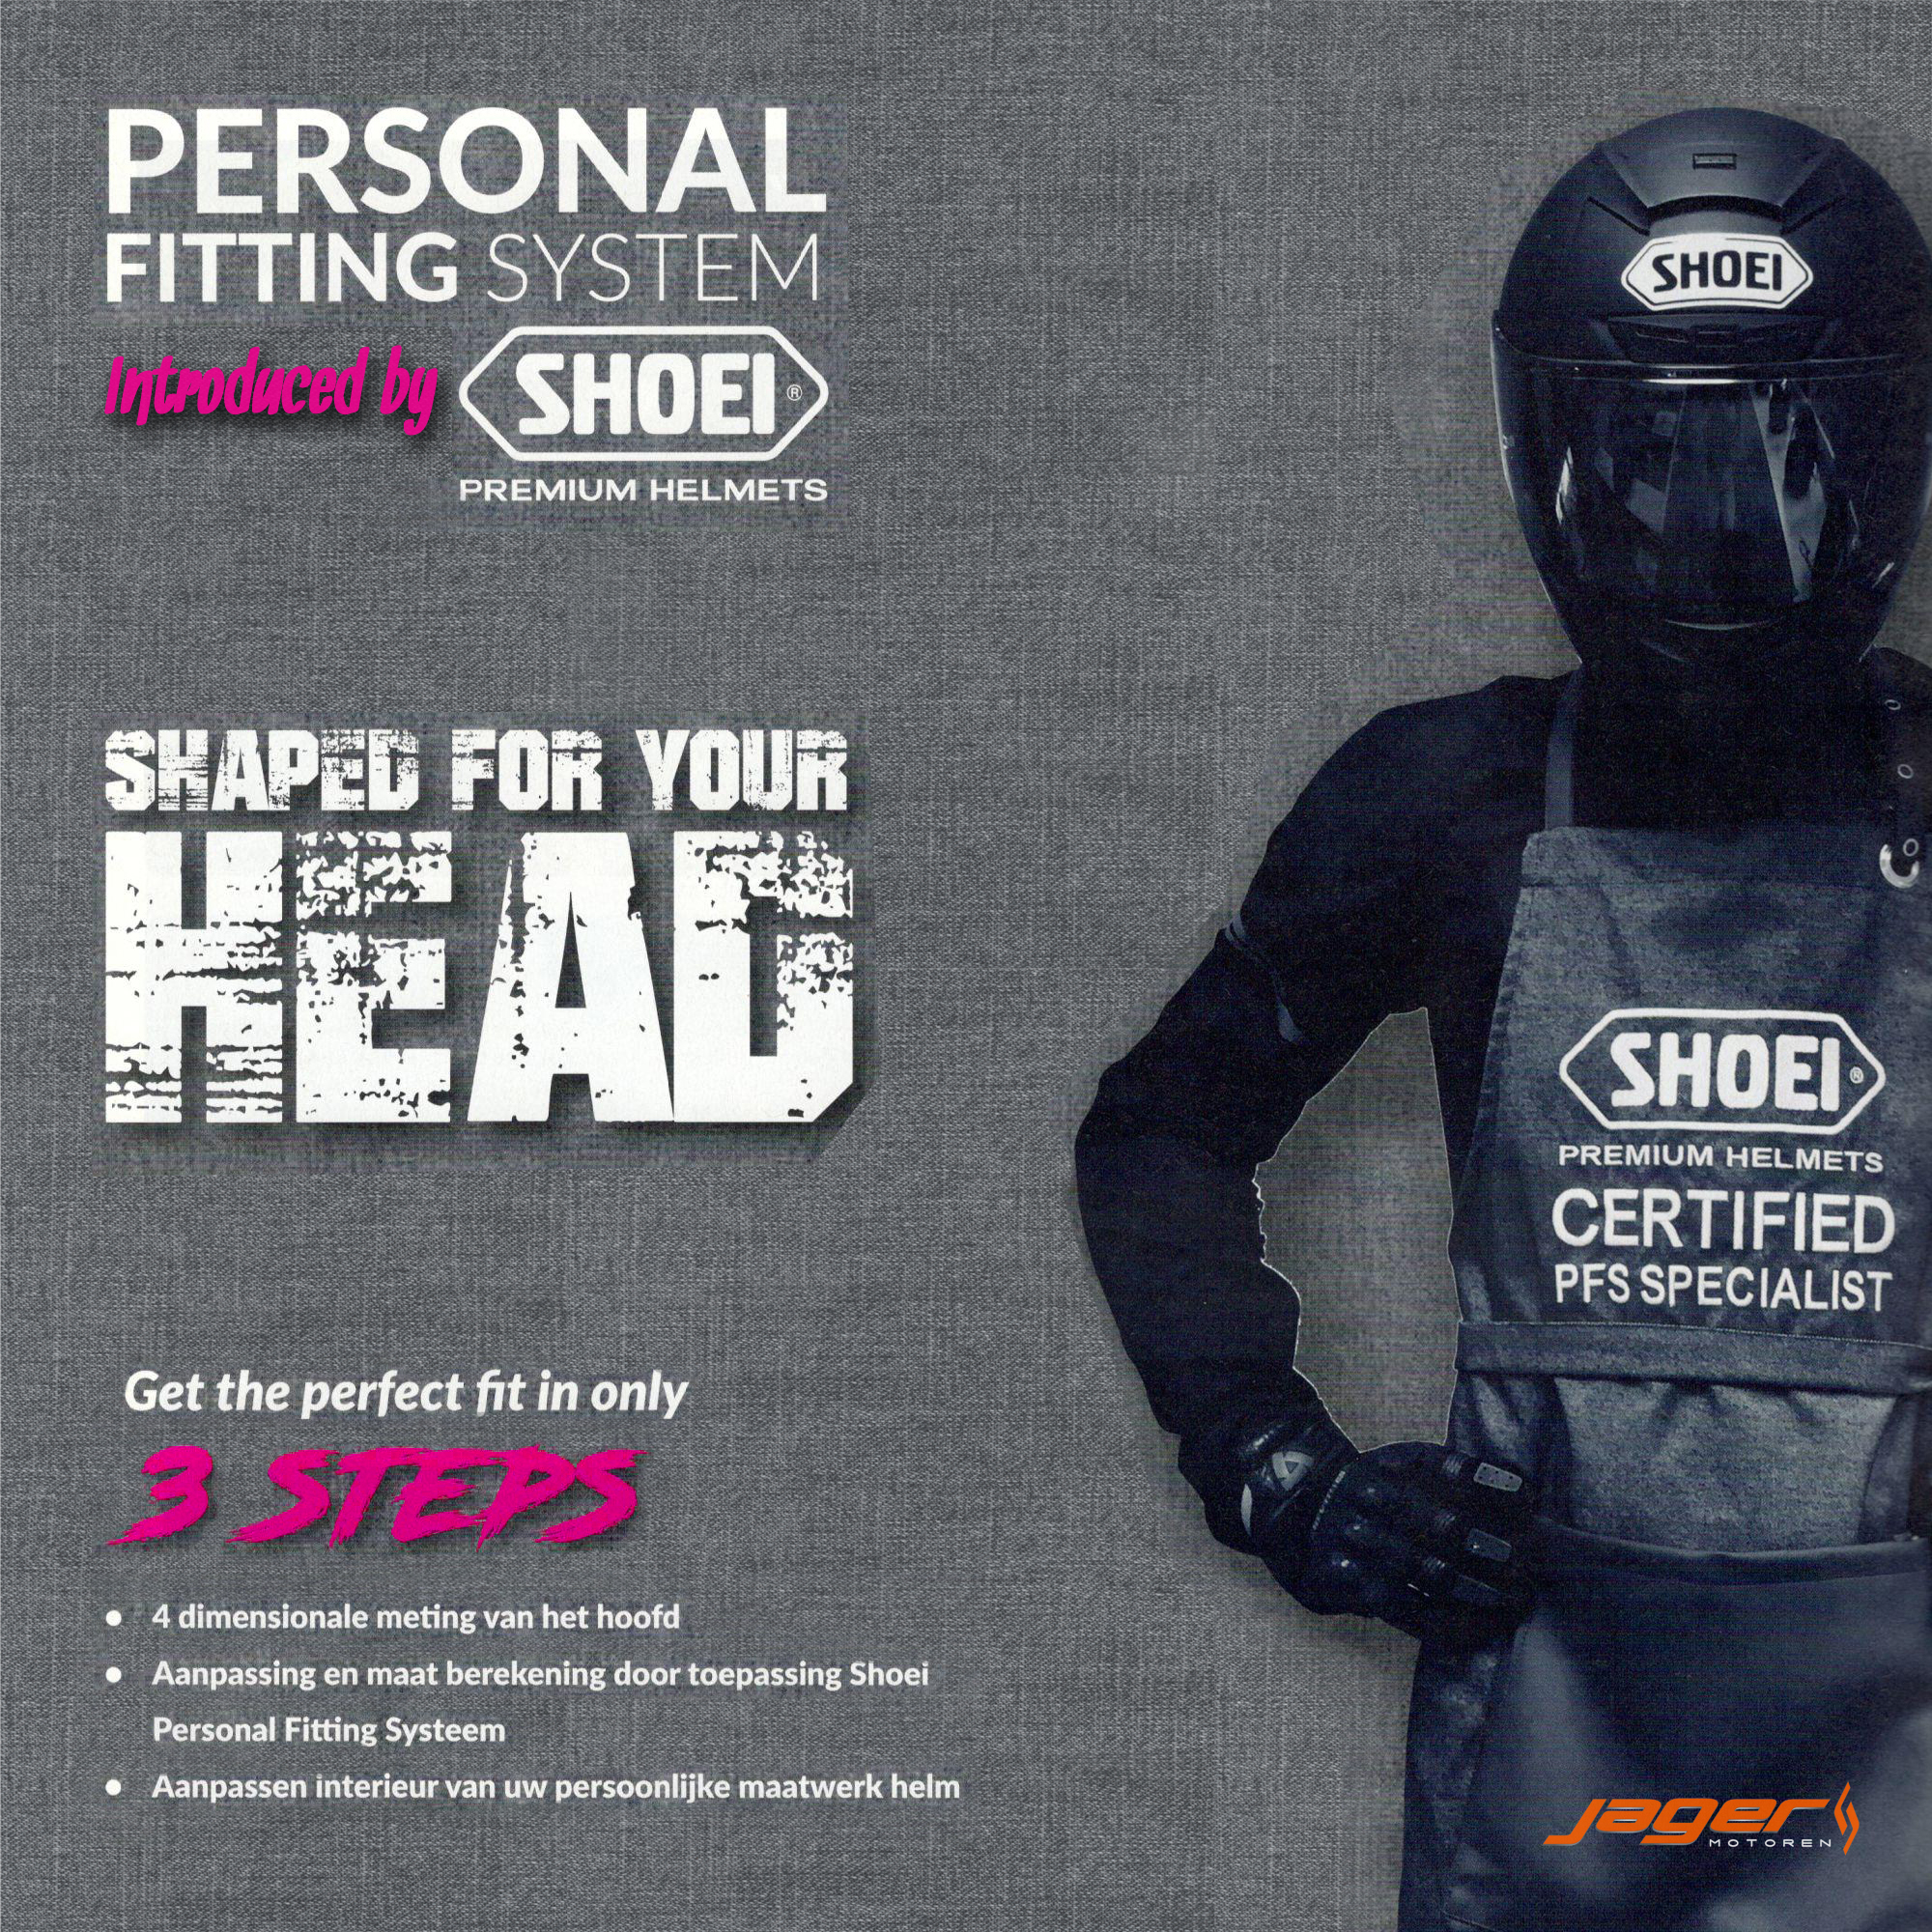 Personal Fitting System